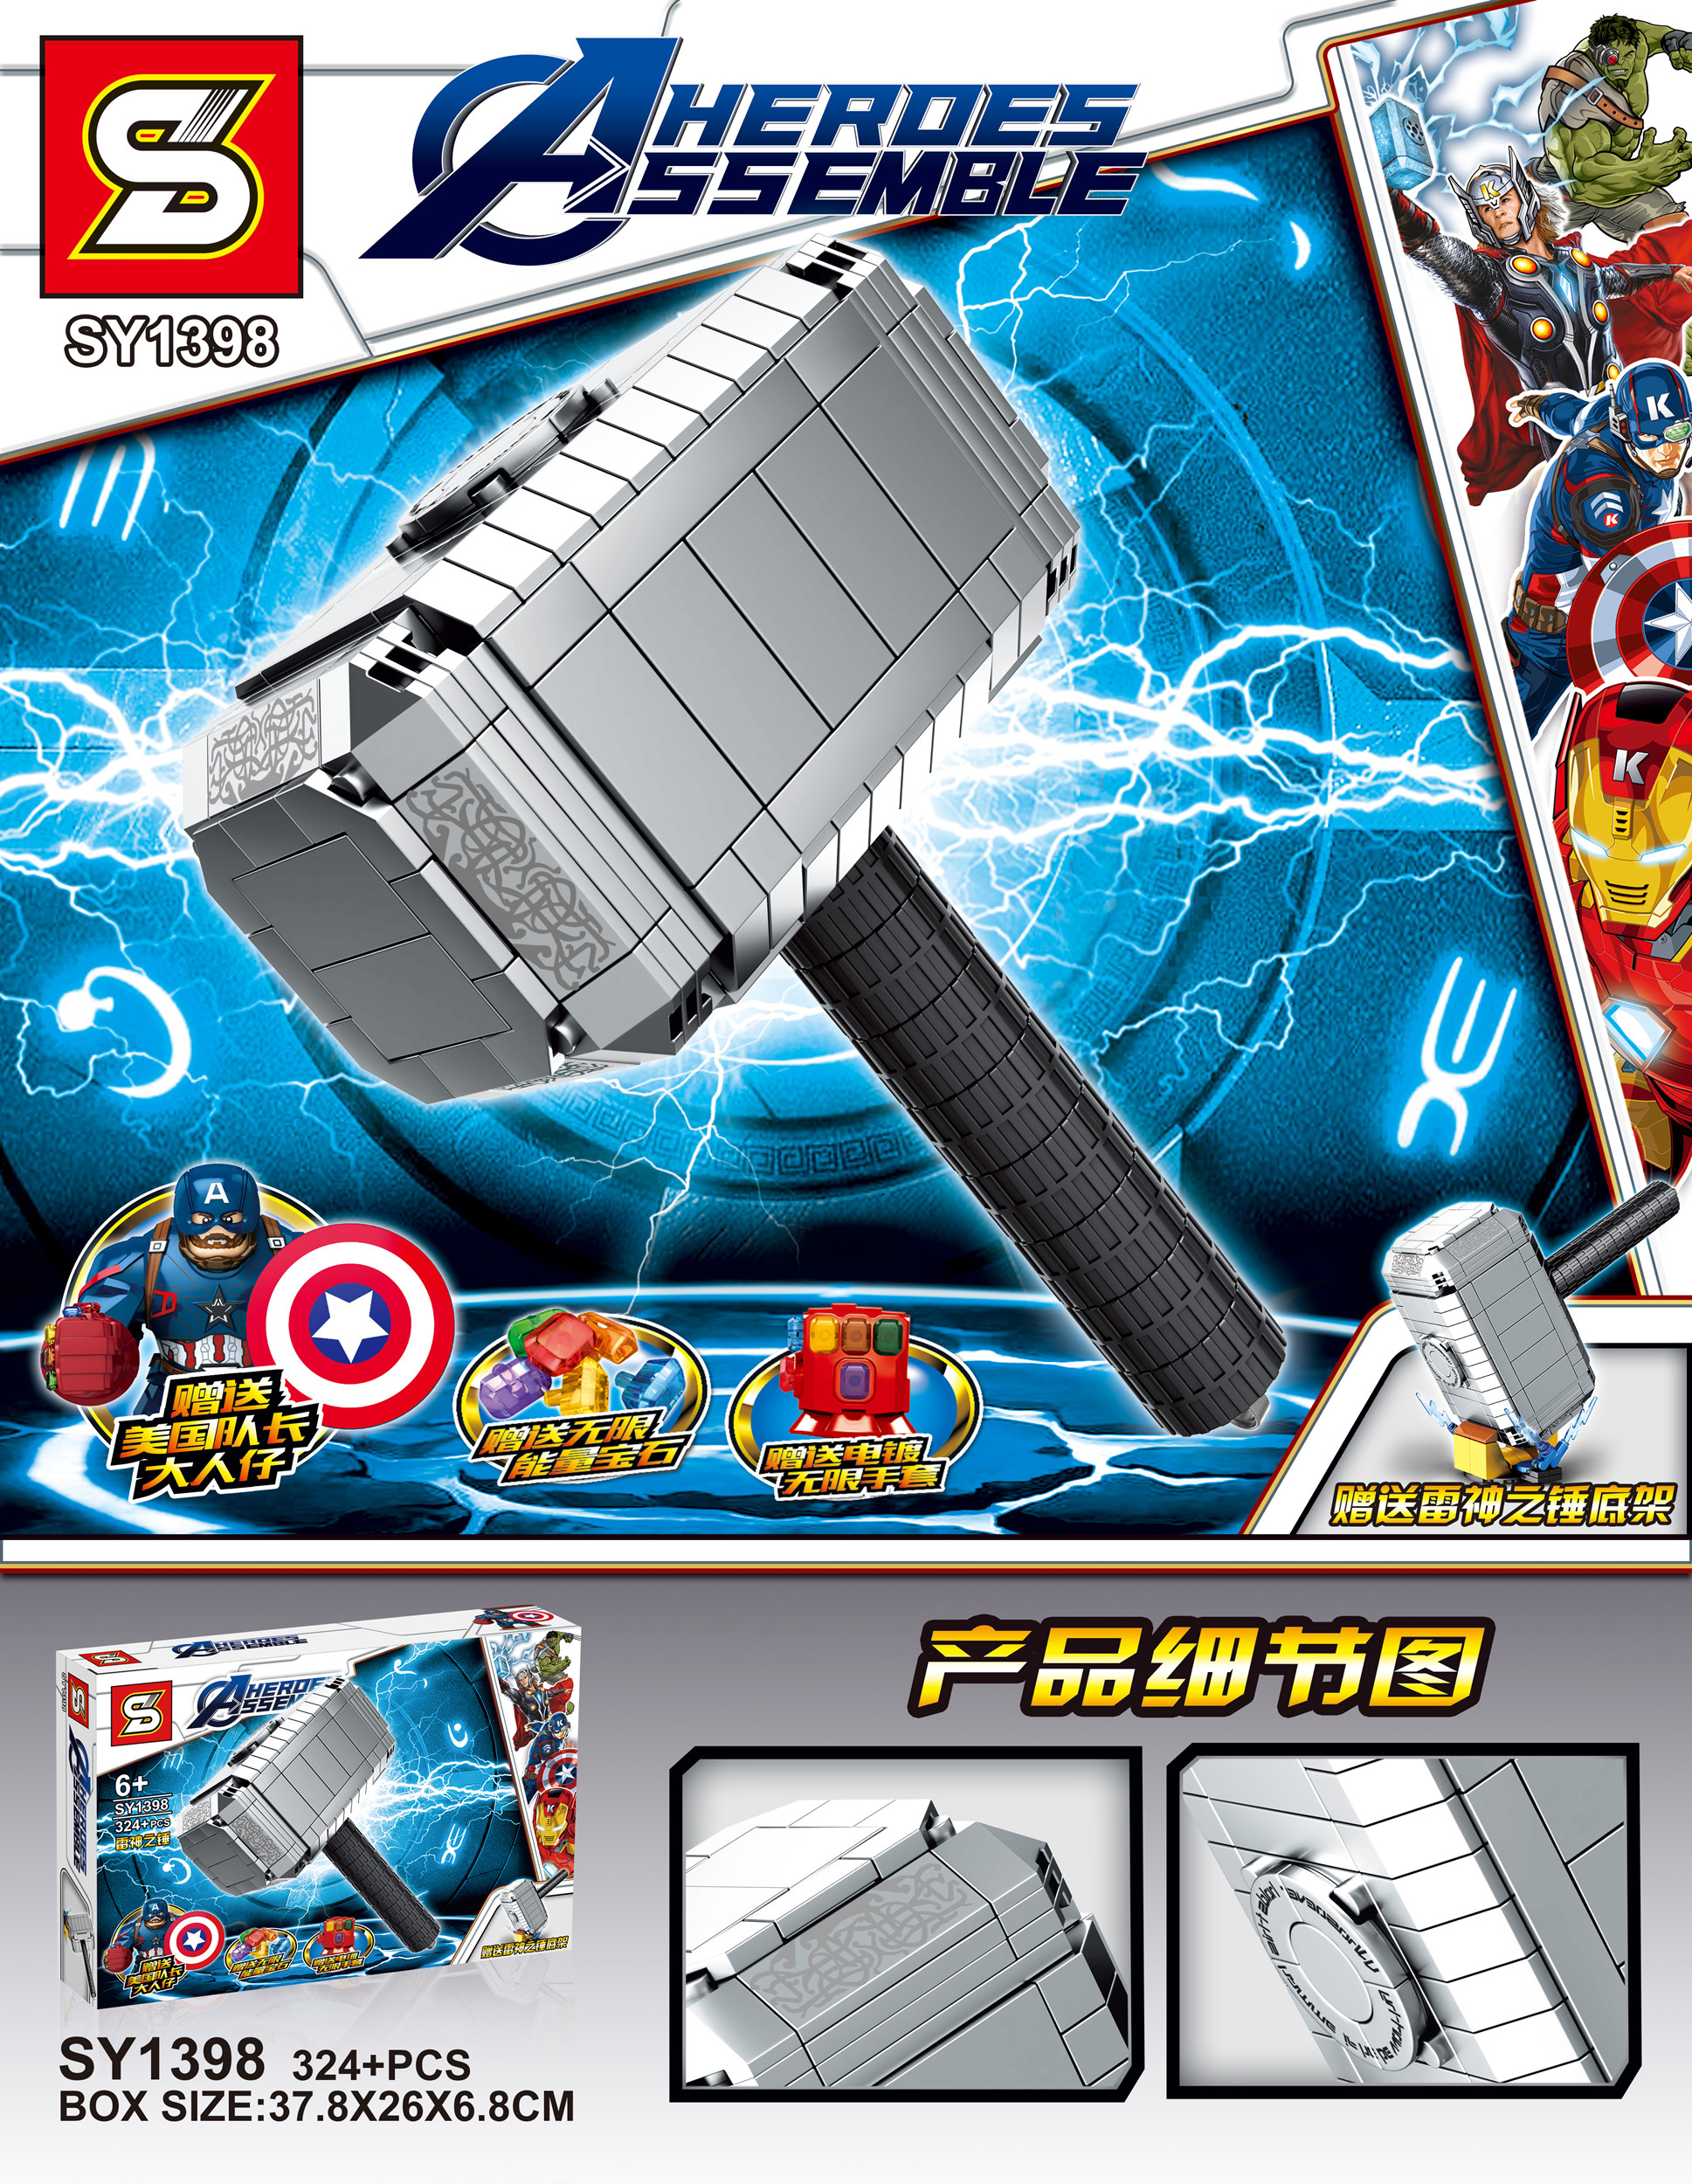 Custom Avengers 4 Mjolnir Thor Hammer Building Blocks Toy Set 324 Pieces